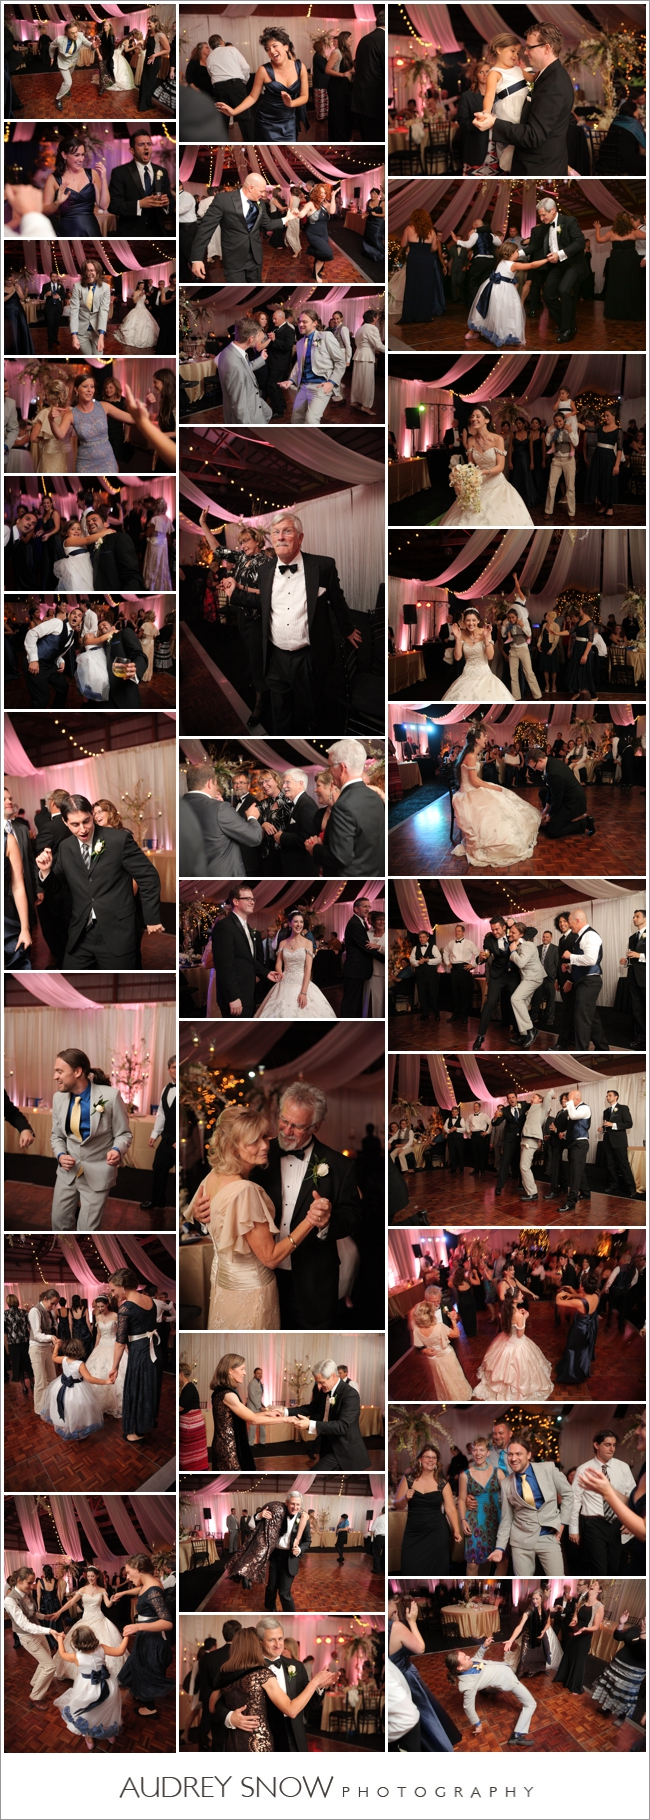 audreysnow-photography-kansas-city-wedding_3362.jpg